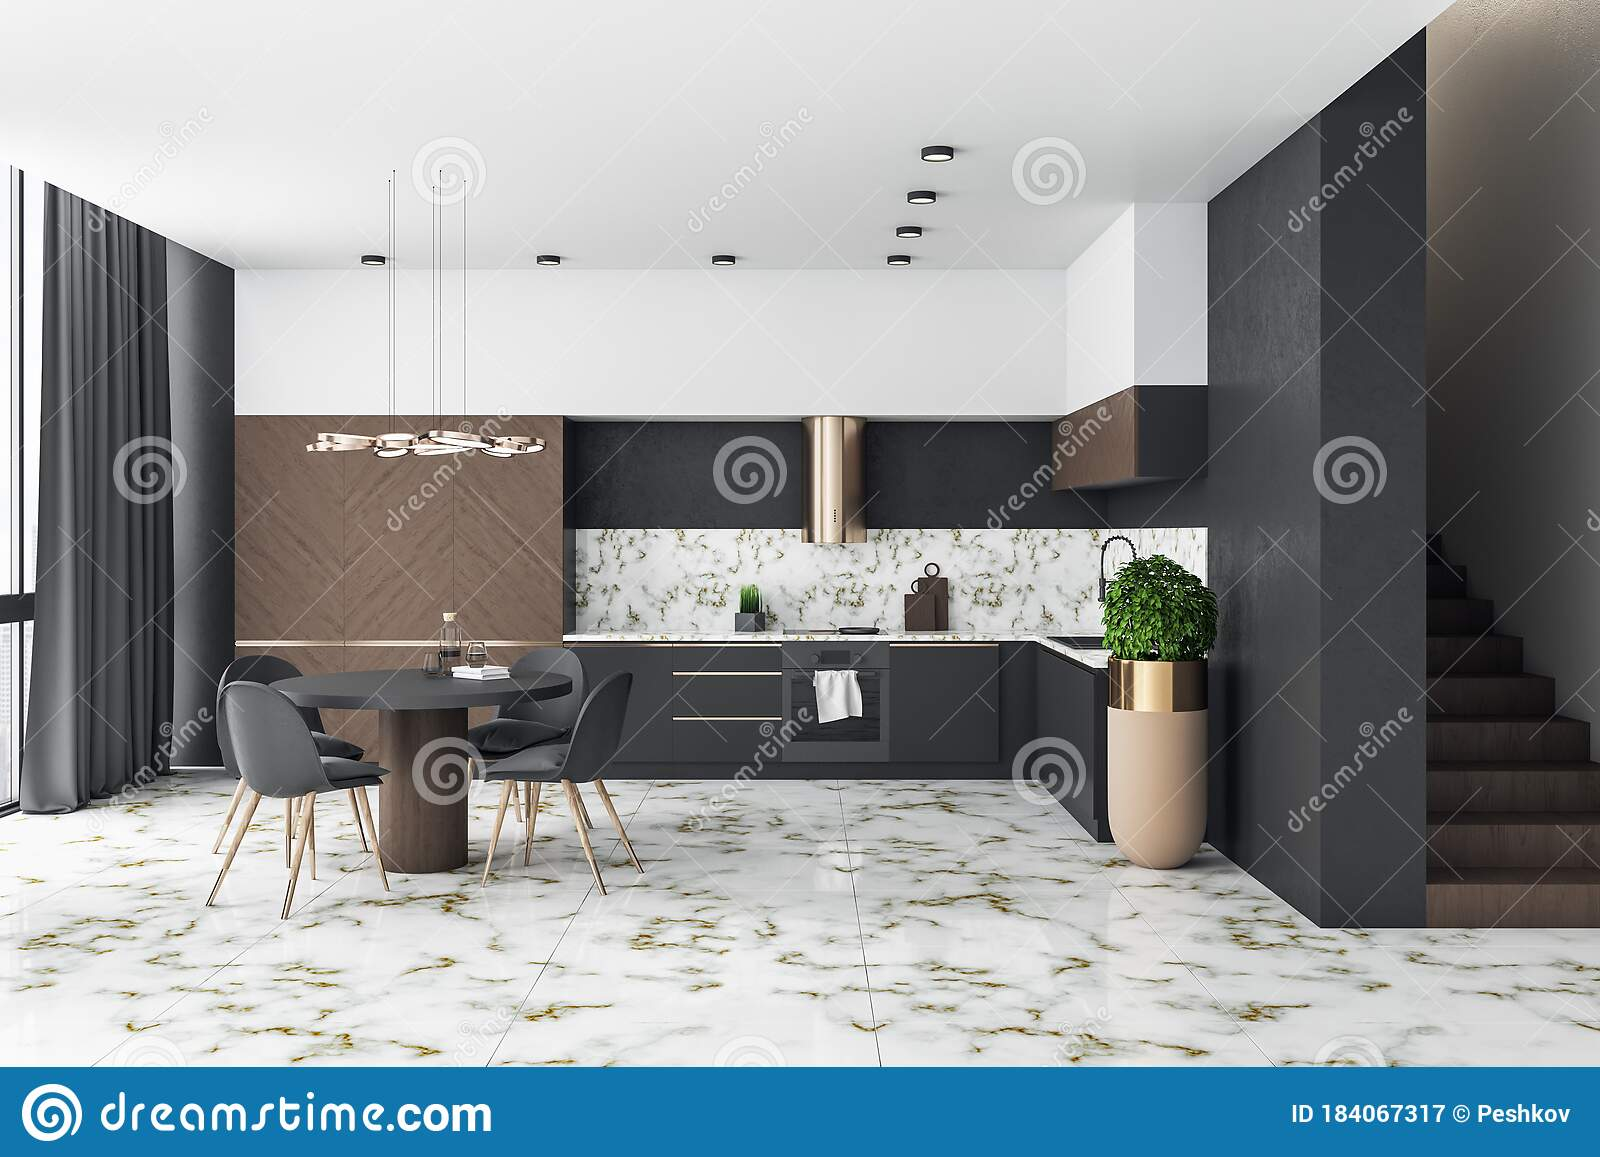 Modern Loft Kitchen Interior With Furniture And Marble Floor Stock Illustration Illustration Of House Furniture 184067317